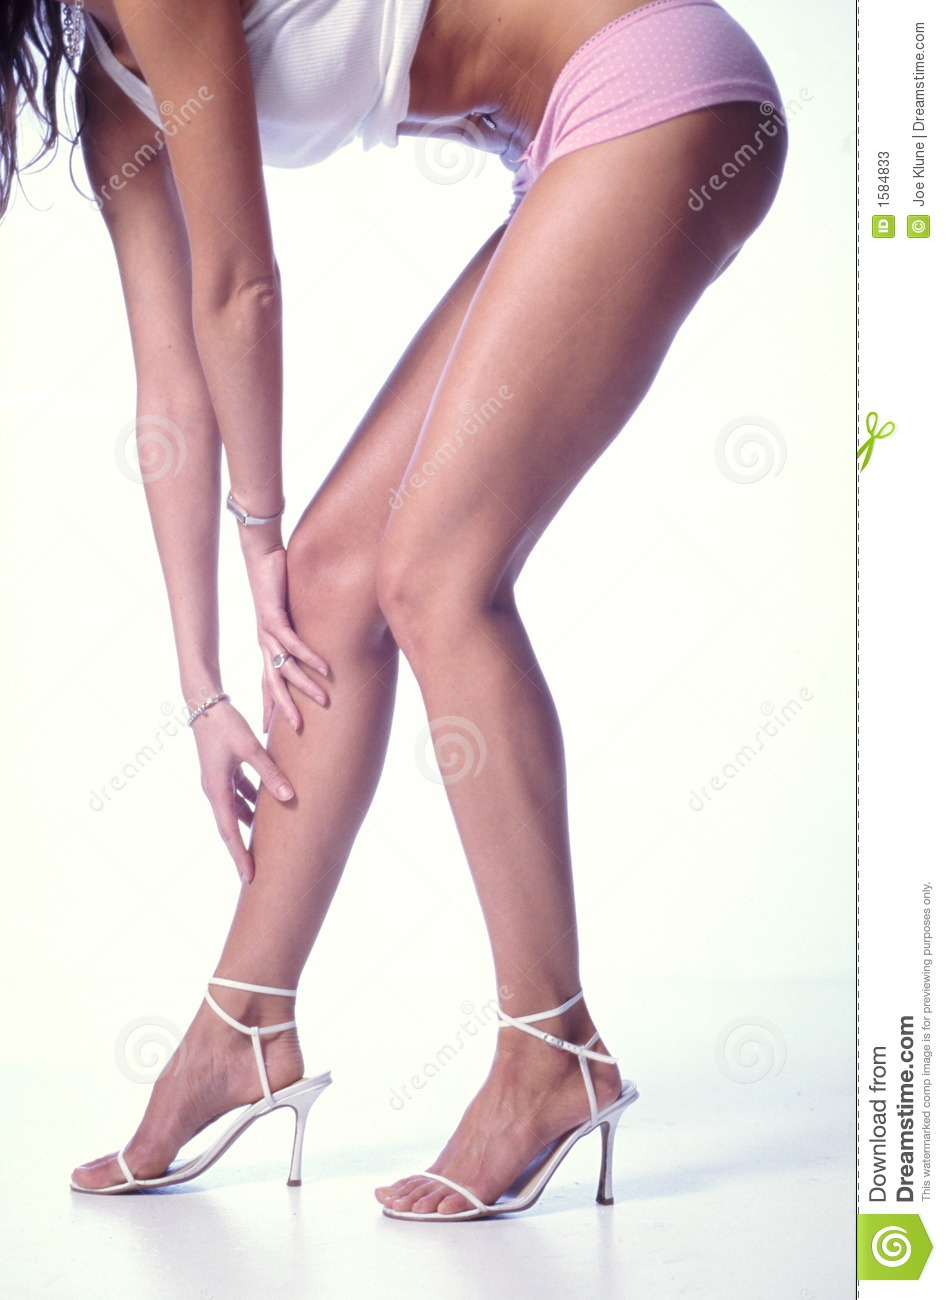 Possible hot leg model opinion you